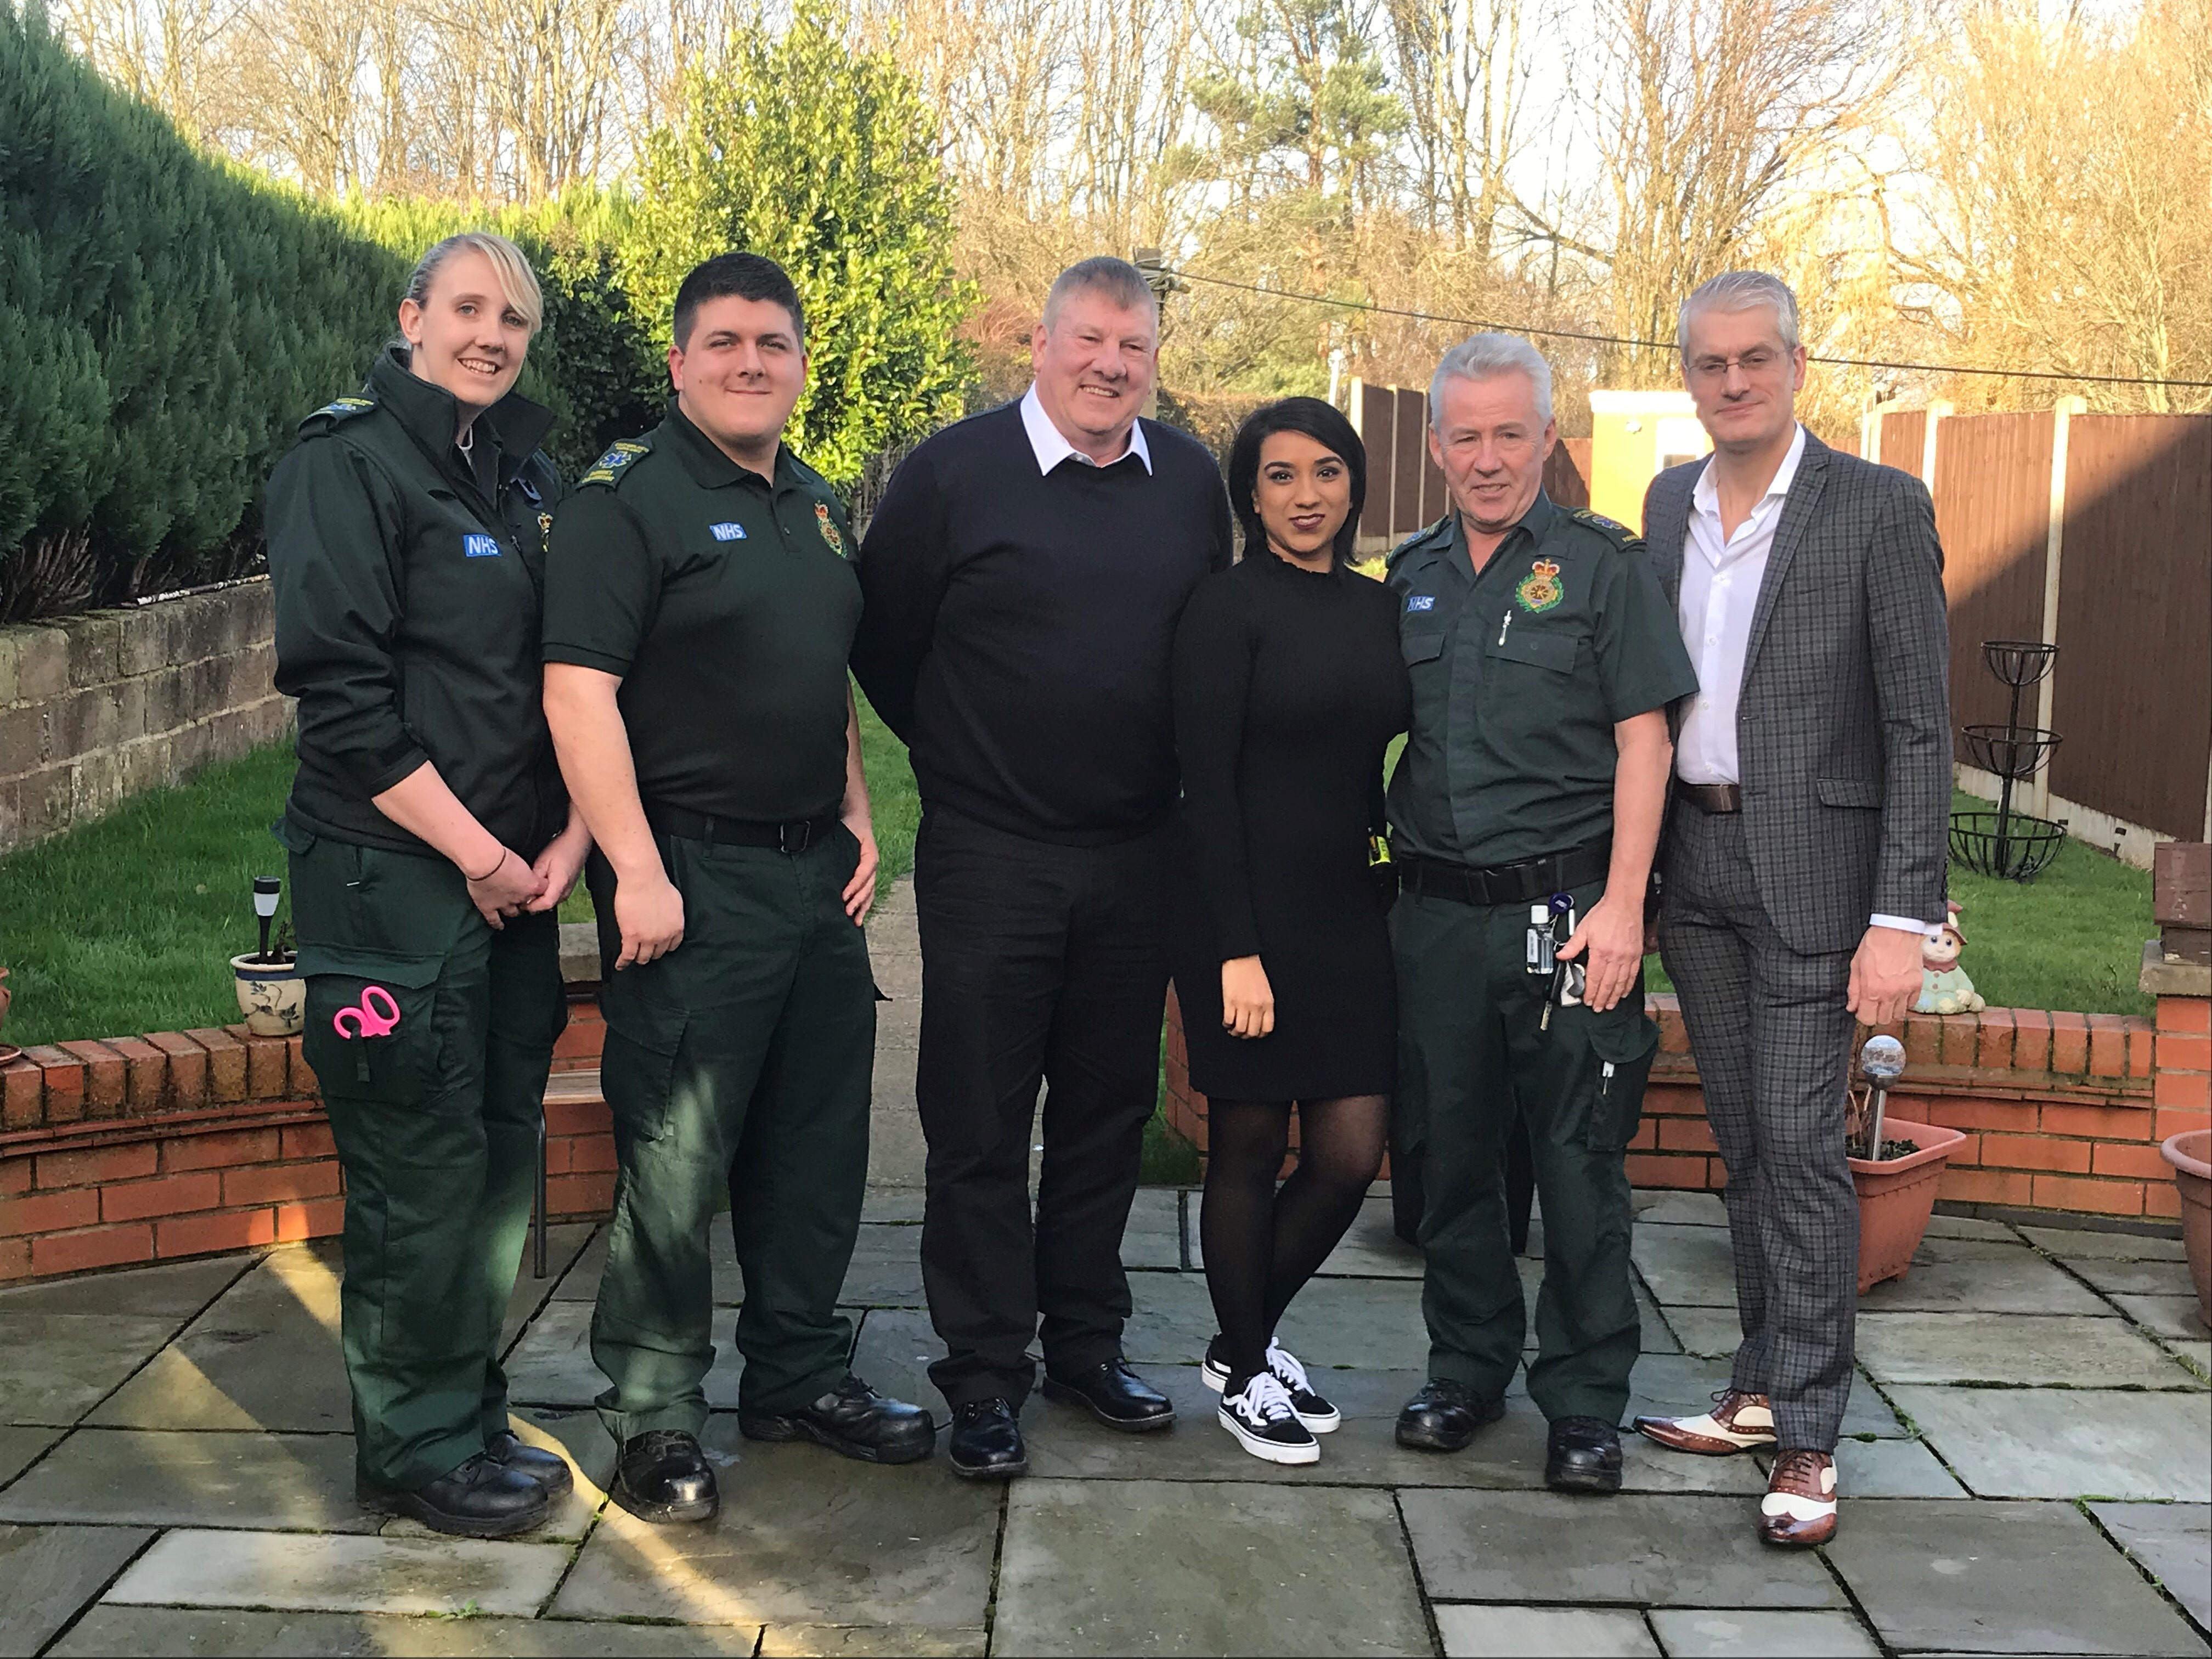 John Rastrick and Pari Mistry are reunited with East Midlands Ambulance Service crew